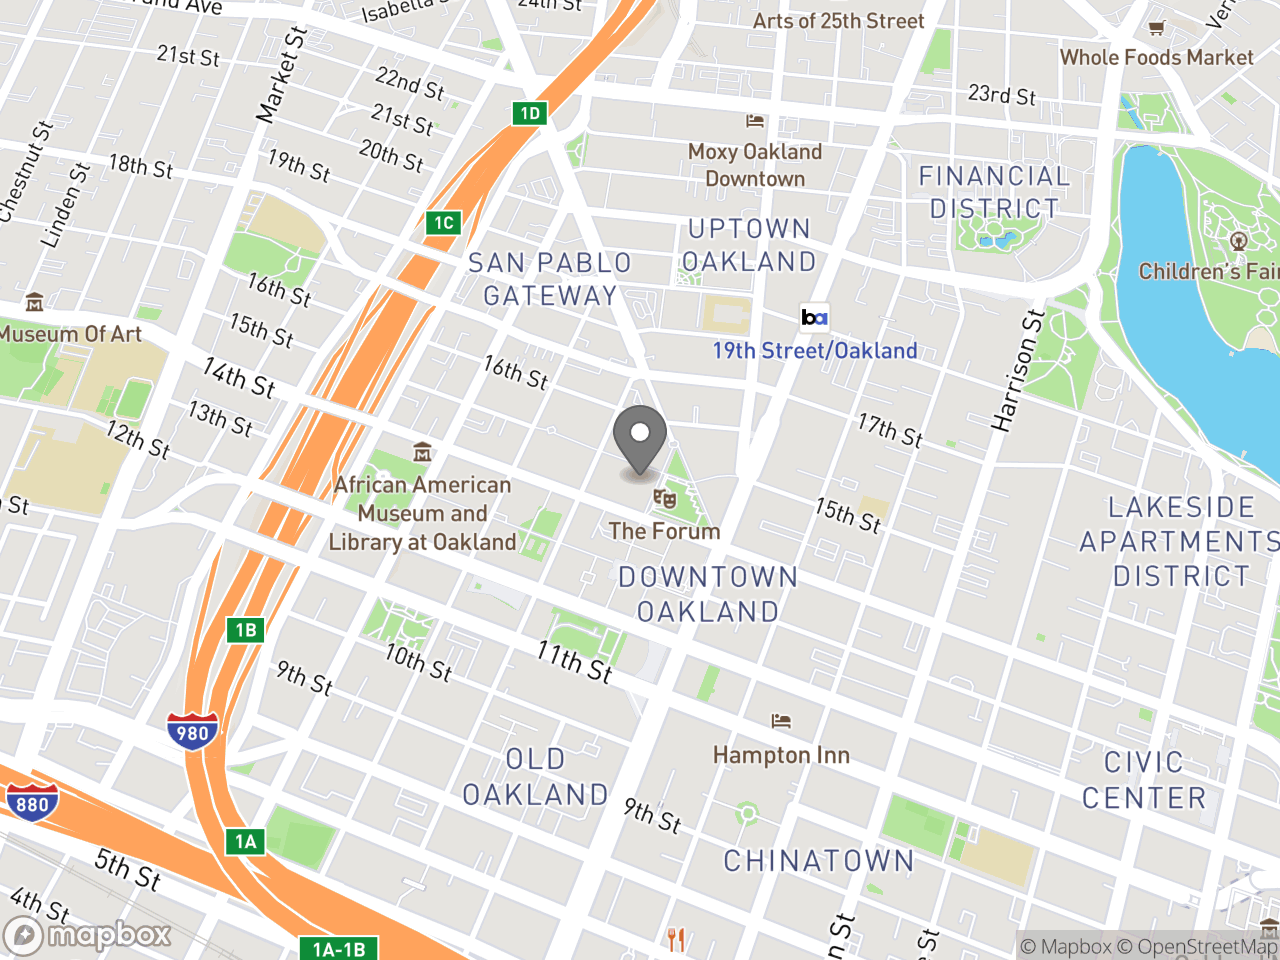 Map image for AC-OCAP Administering Board Meeting, located at  in Oakland, CA 94612